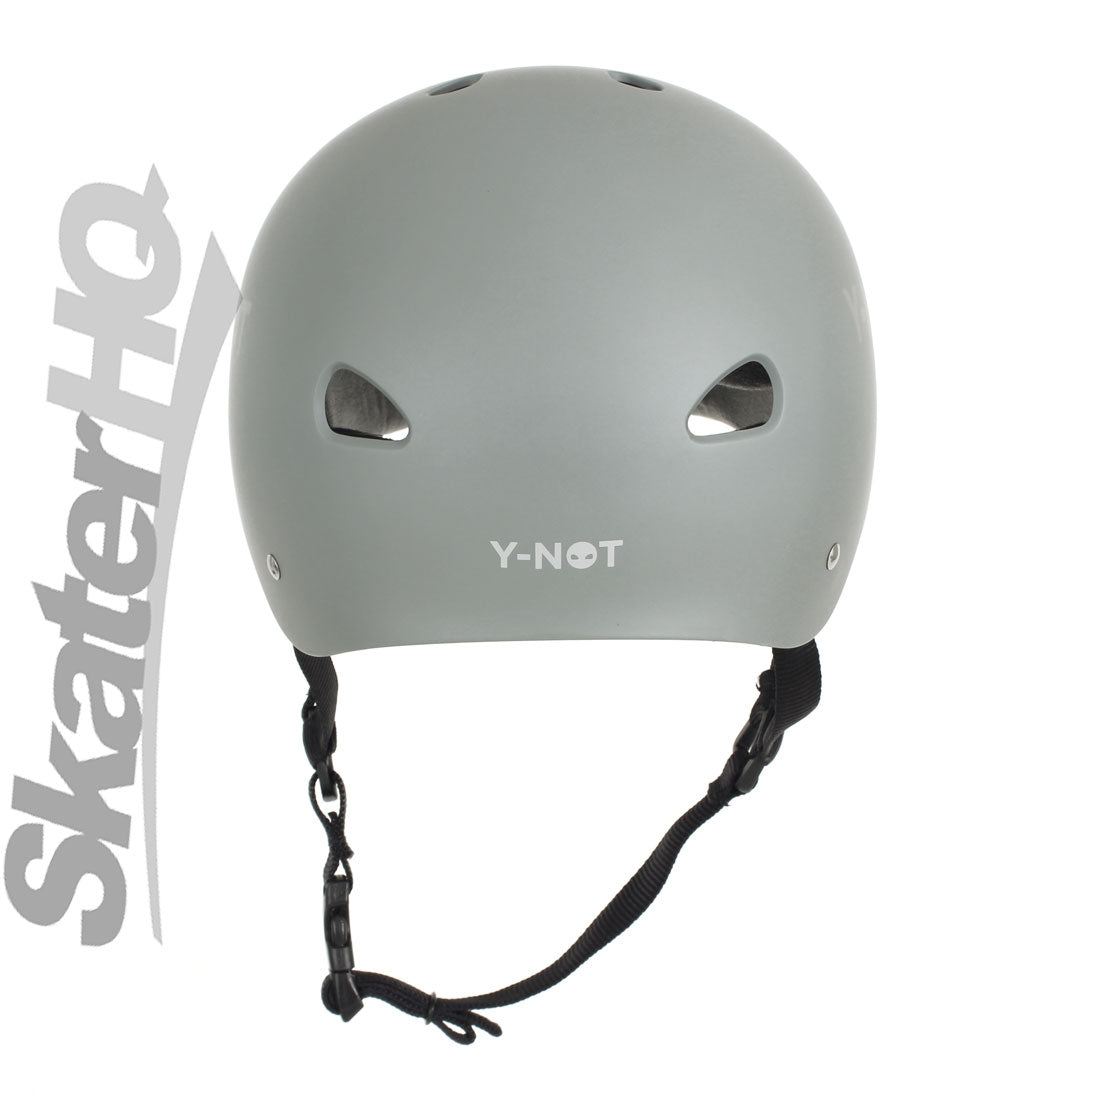 Y-Not Skate Helmet Grey - Small